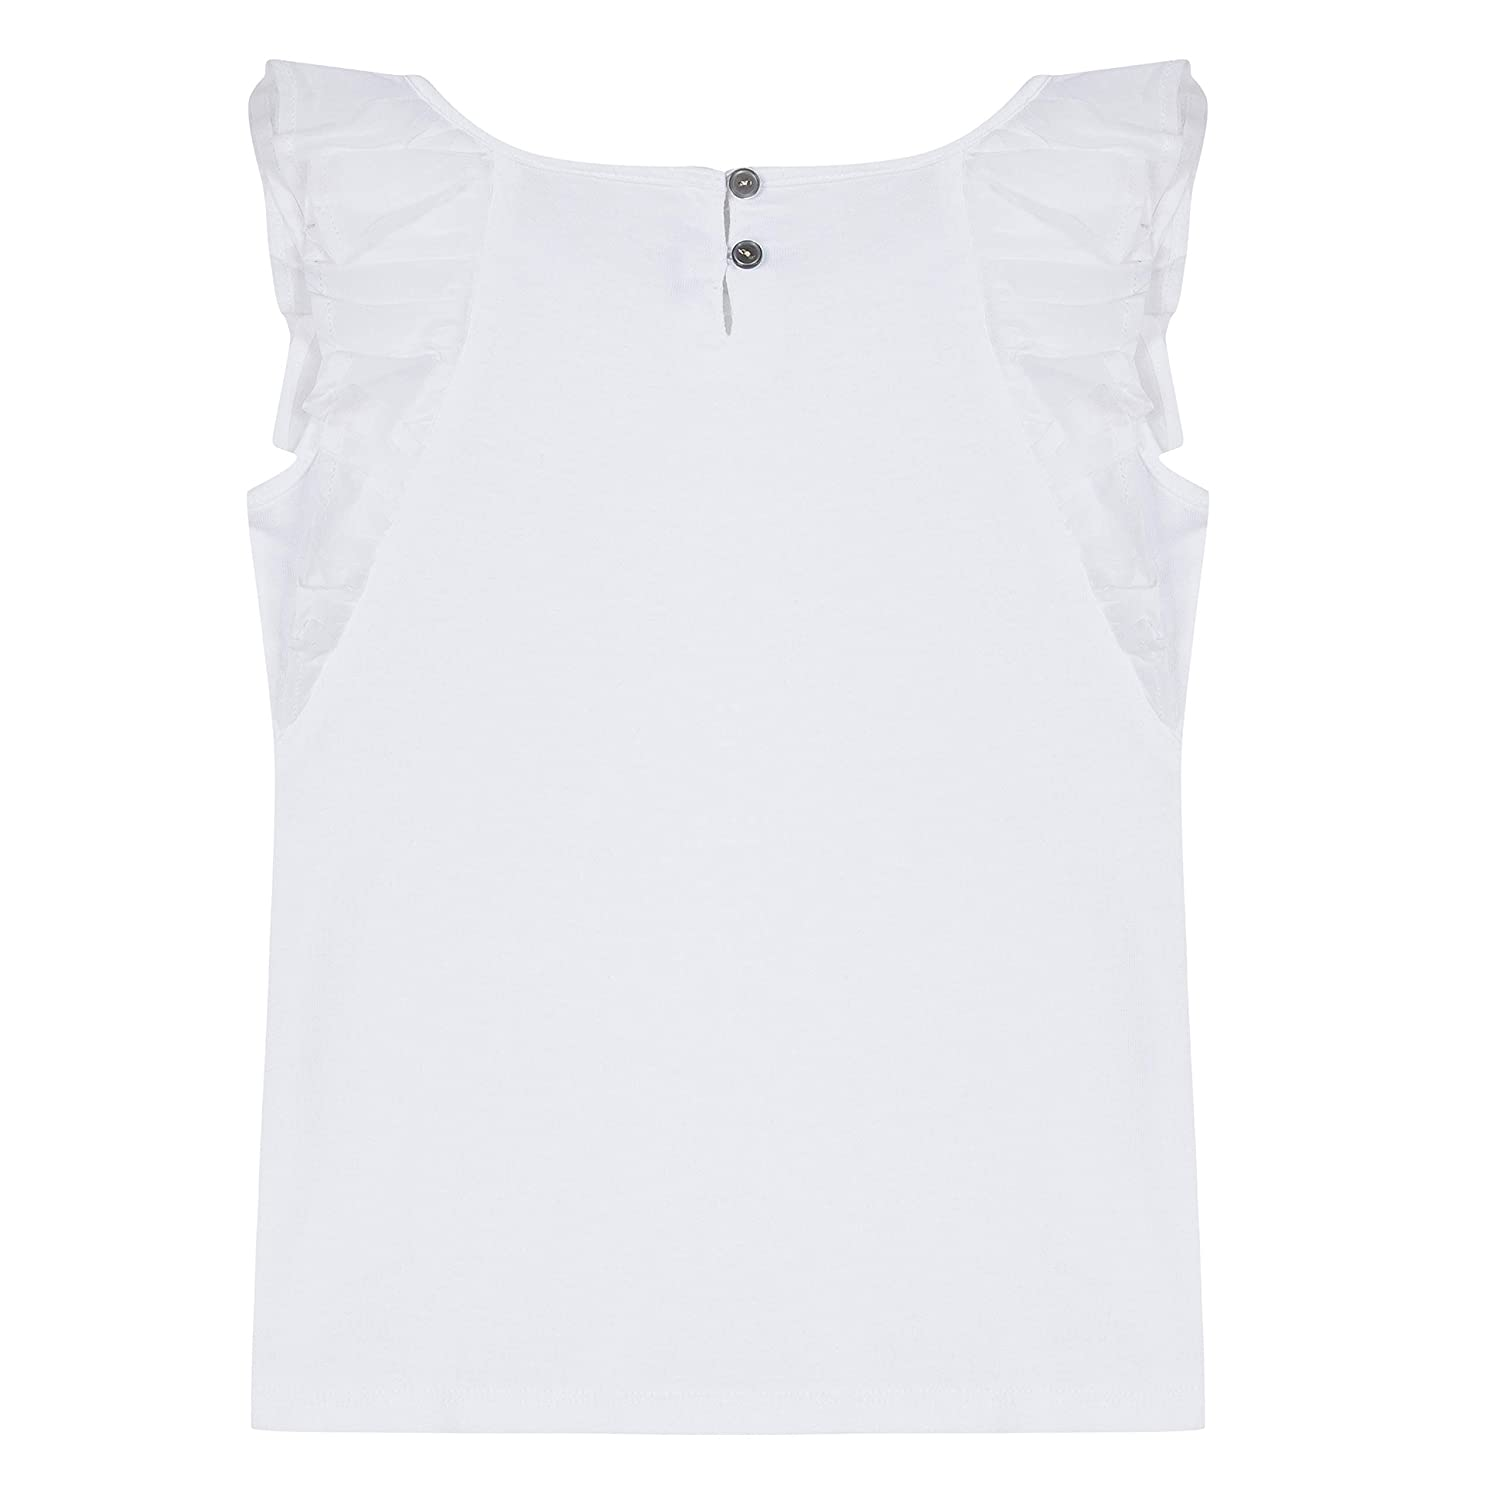 Jean Bourget T-Shirt Fille